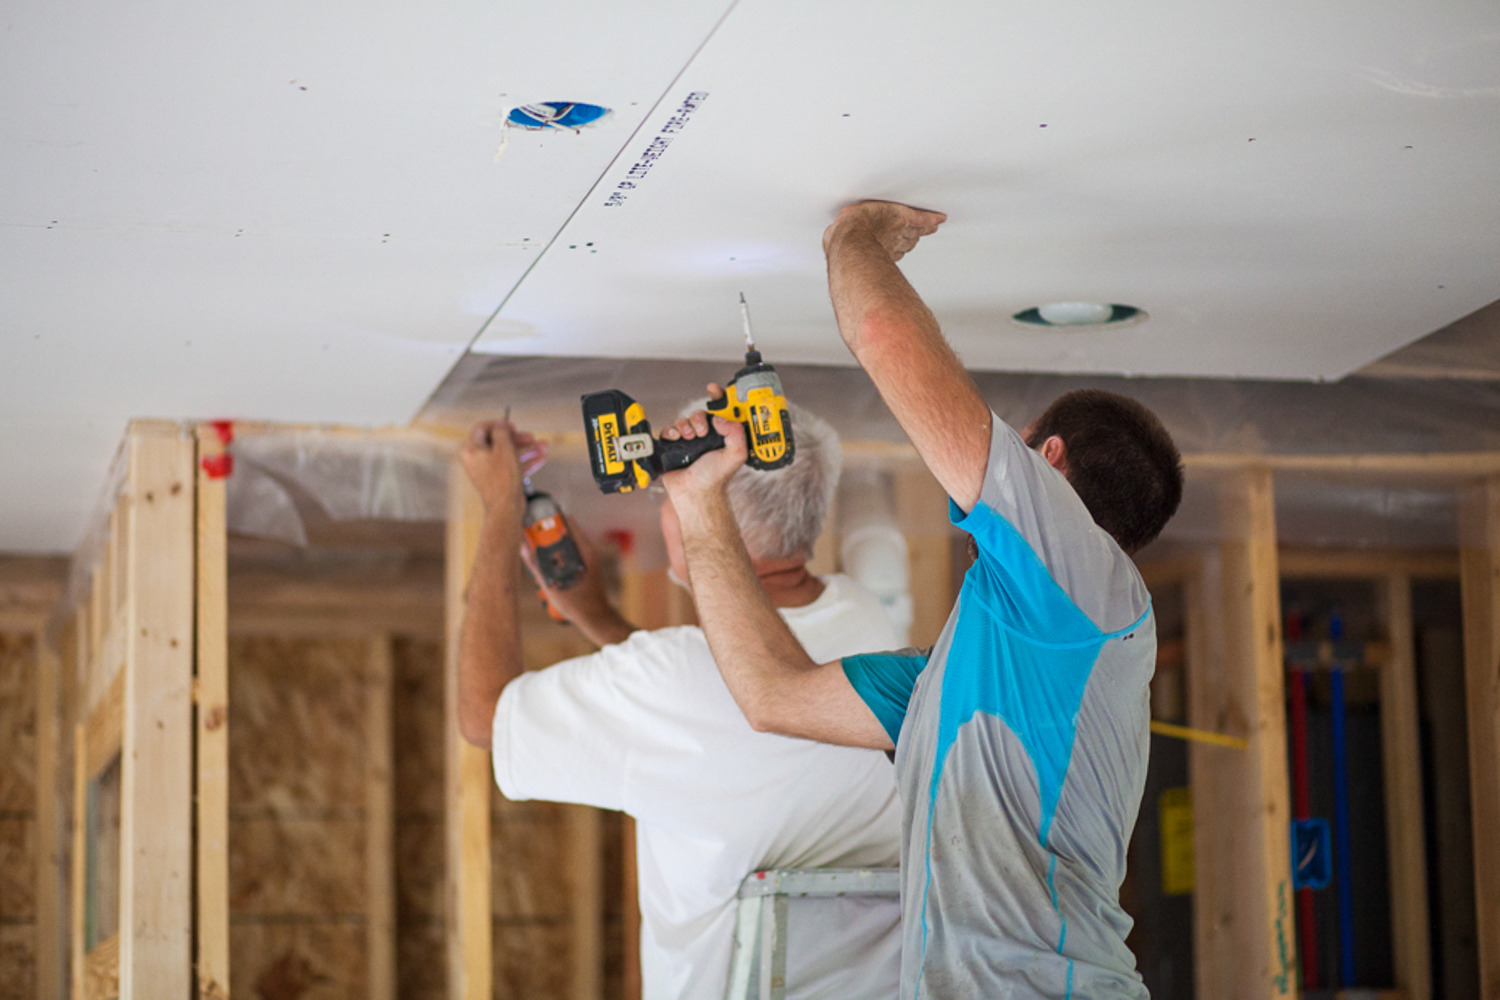 installing ceiling drywall in accessible home